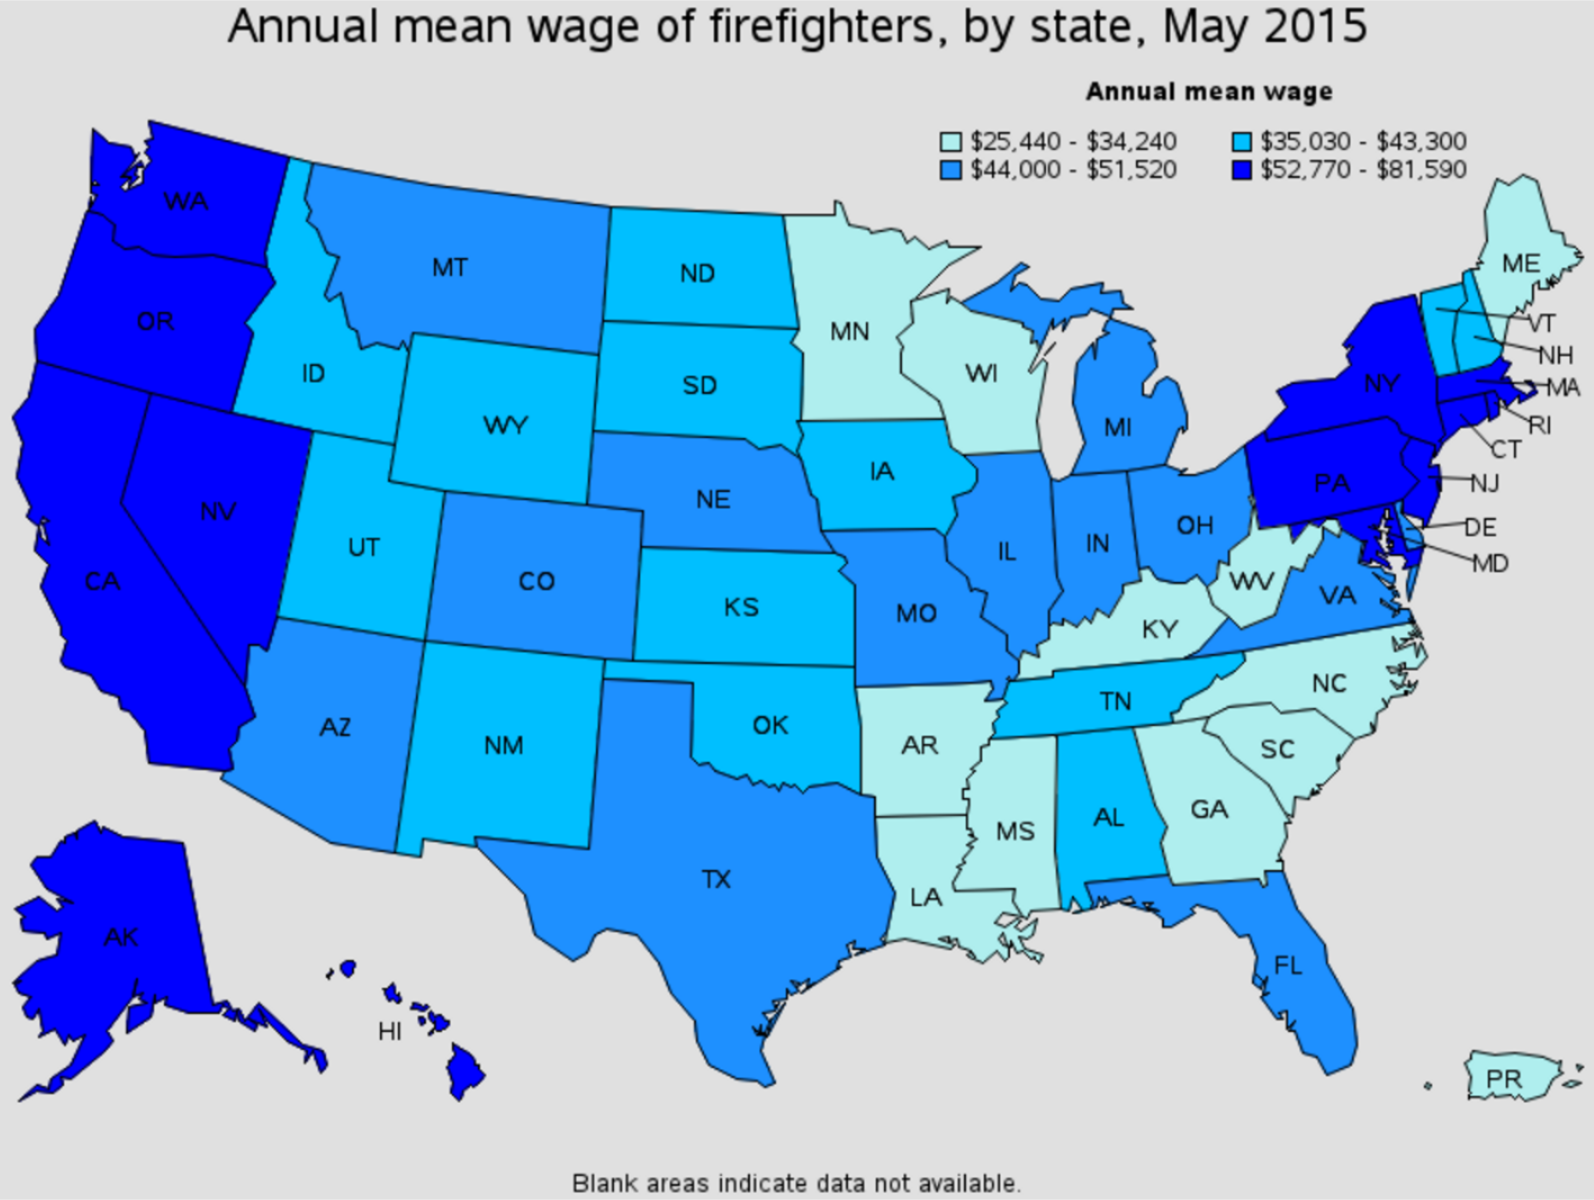 firefighter average salary by state West Palm Beach Florida